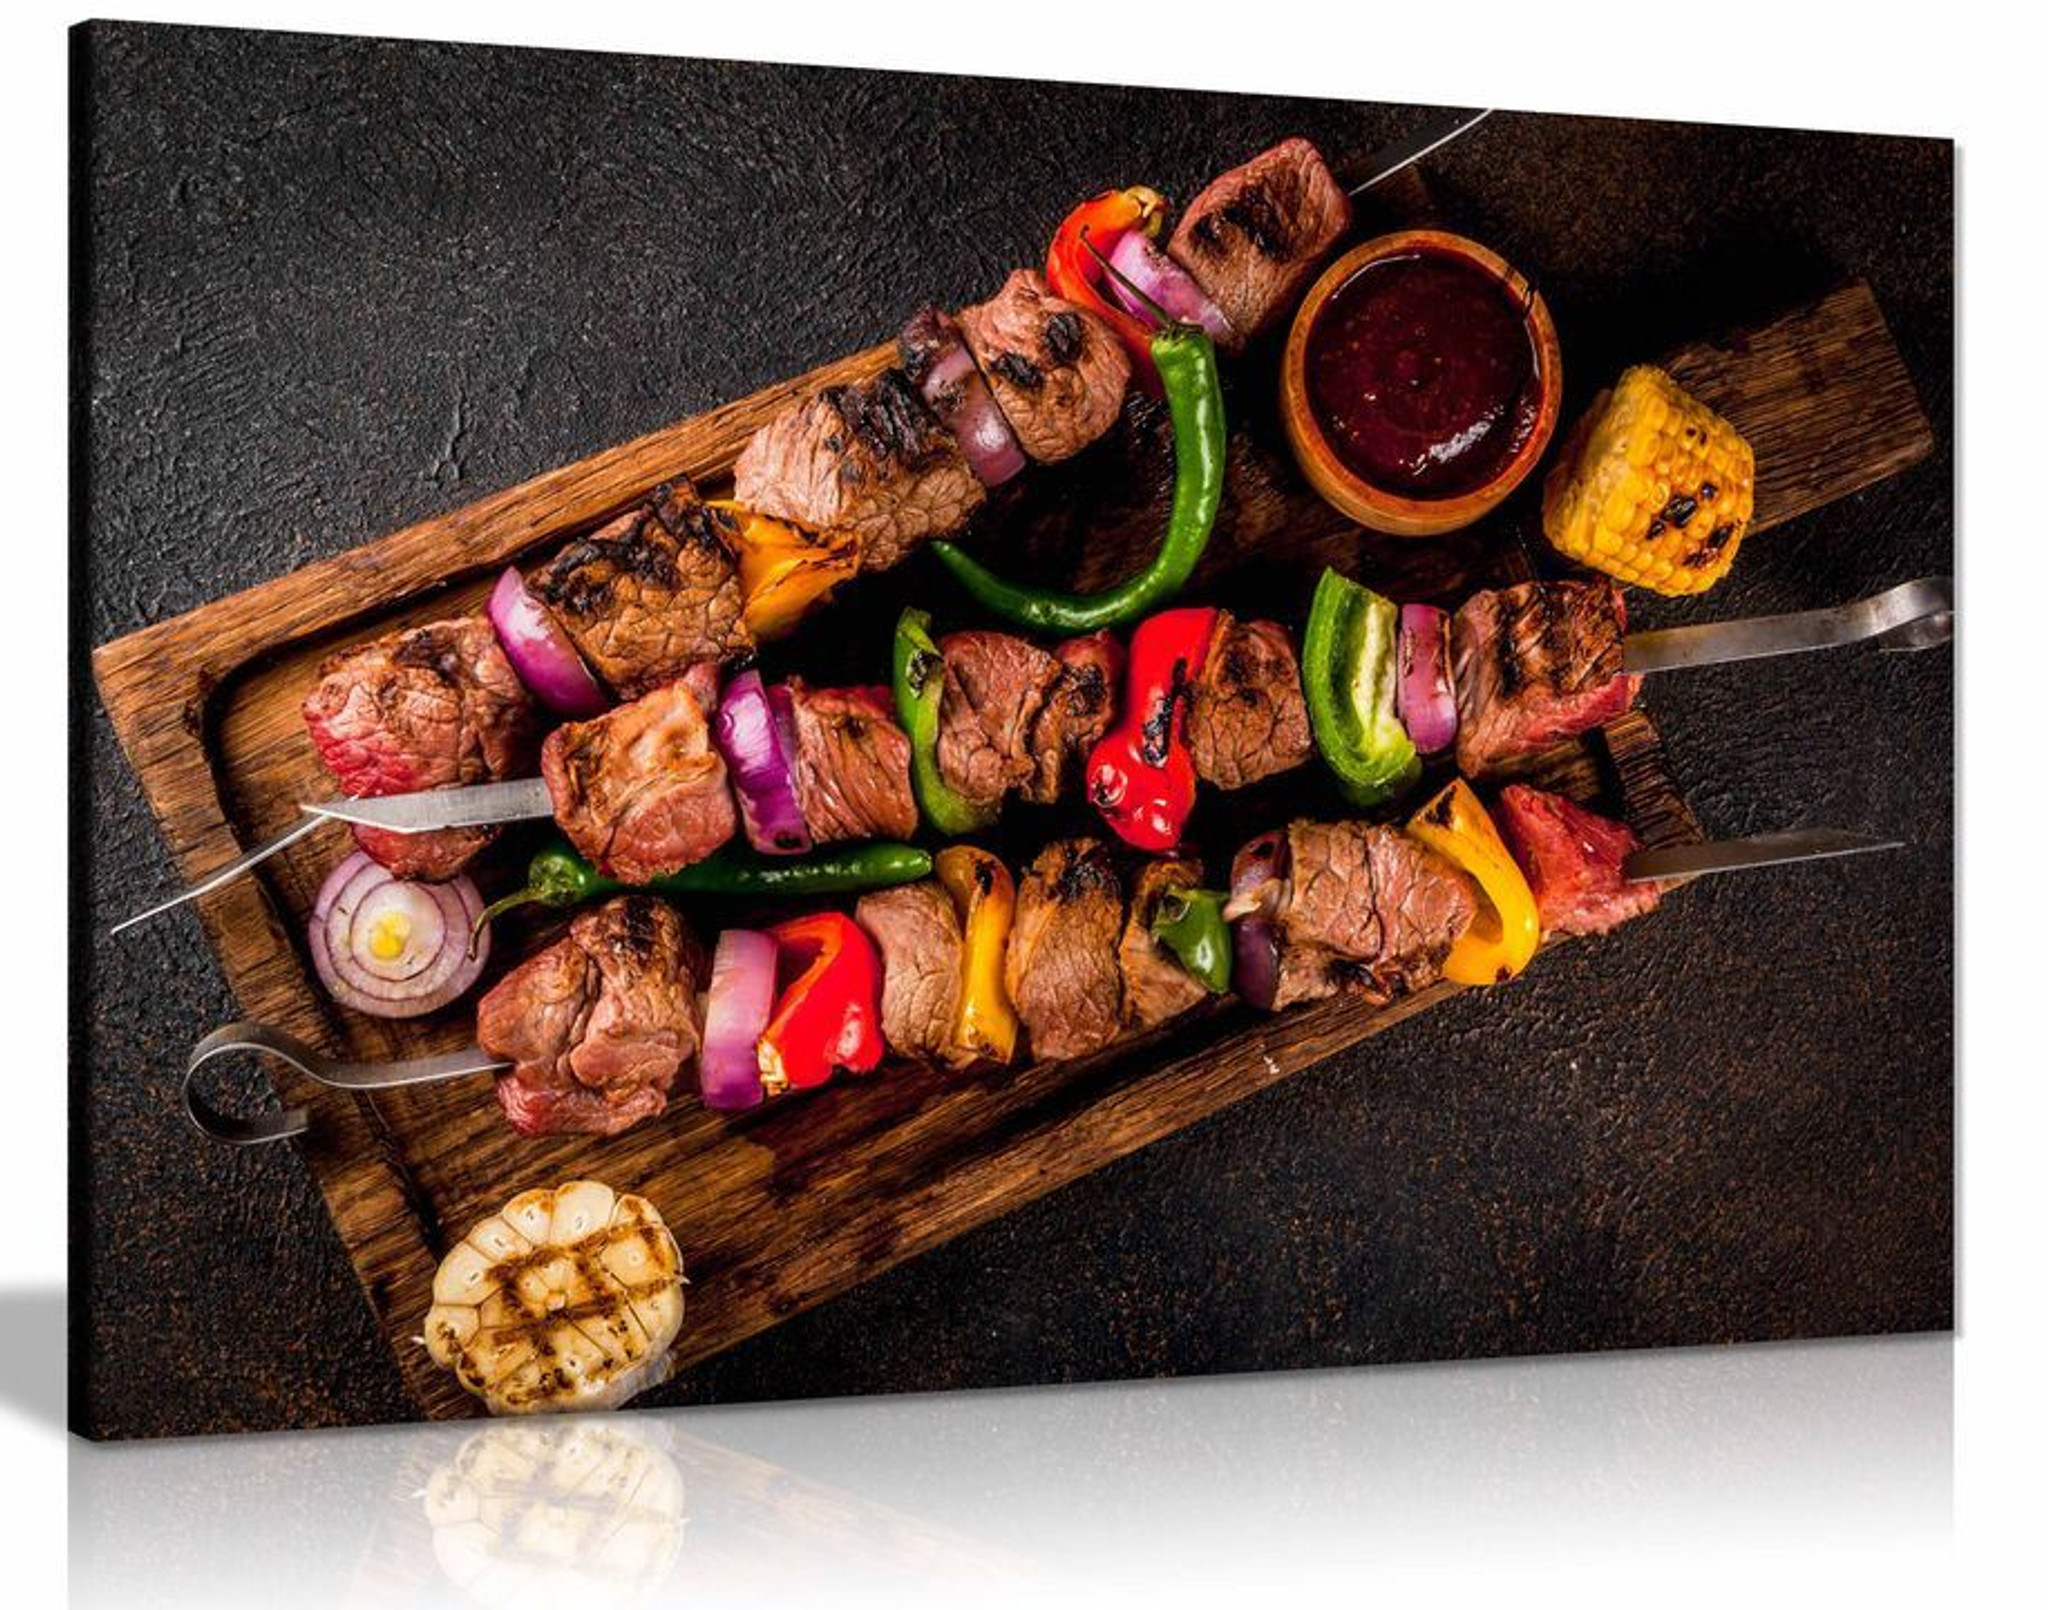 Beef Shish Kebab Grill Turkish Restaurant Kabob Food Canvas Wall Art Picture Print Home Decor